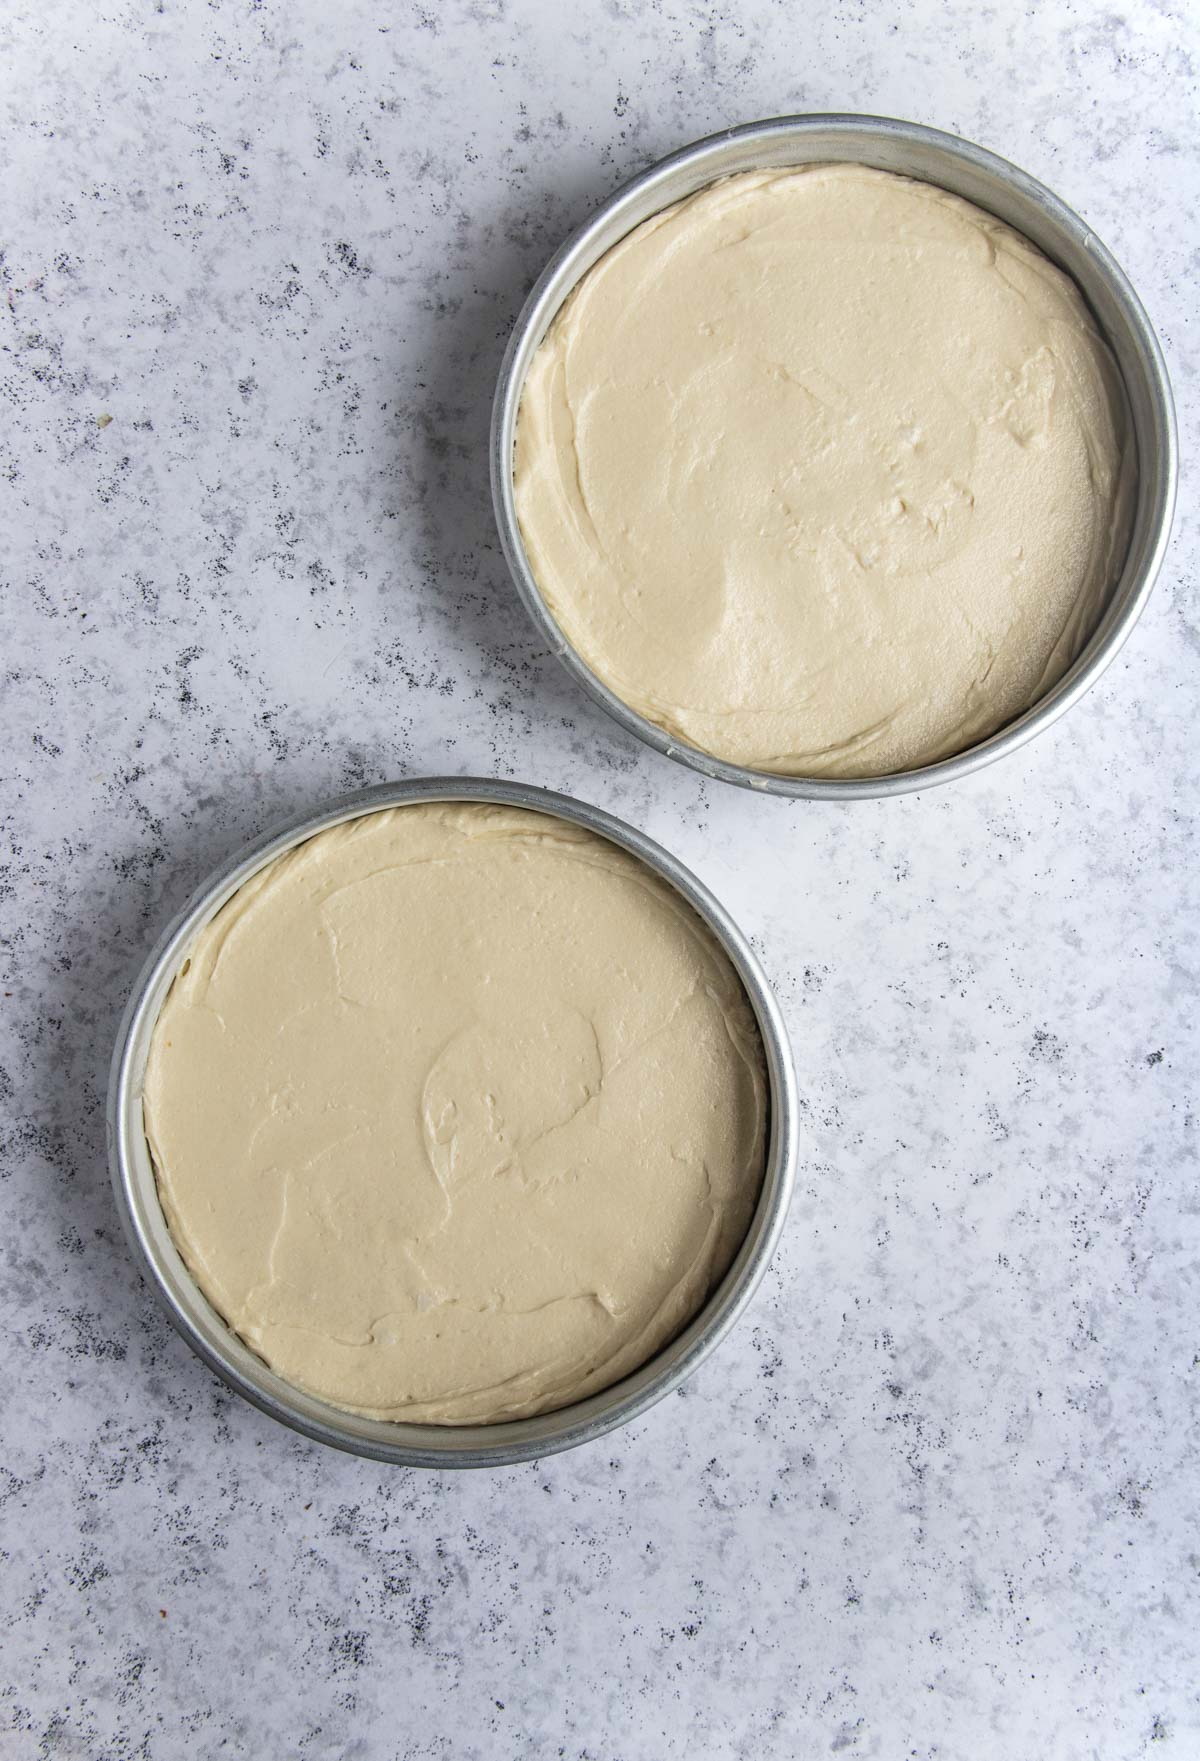 The cake batter measured into two 9-inch round cake pans